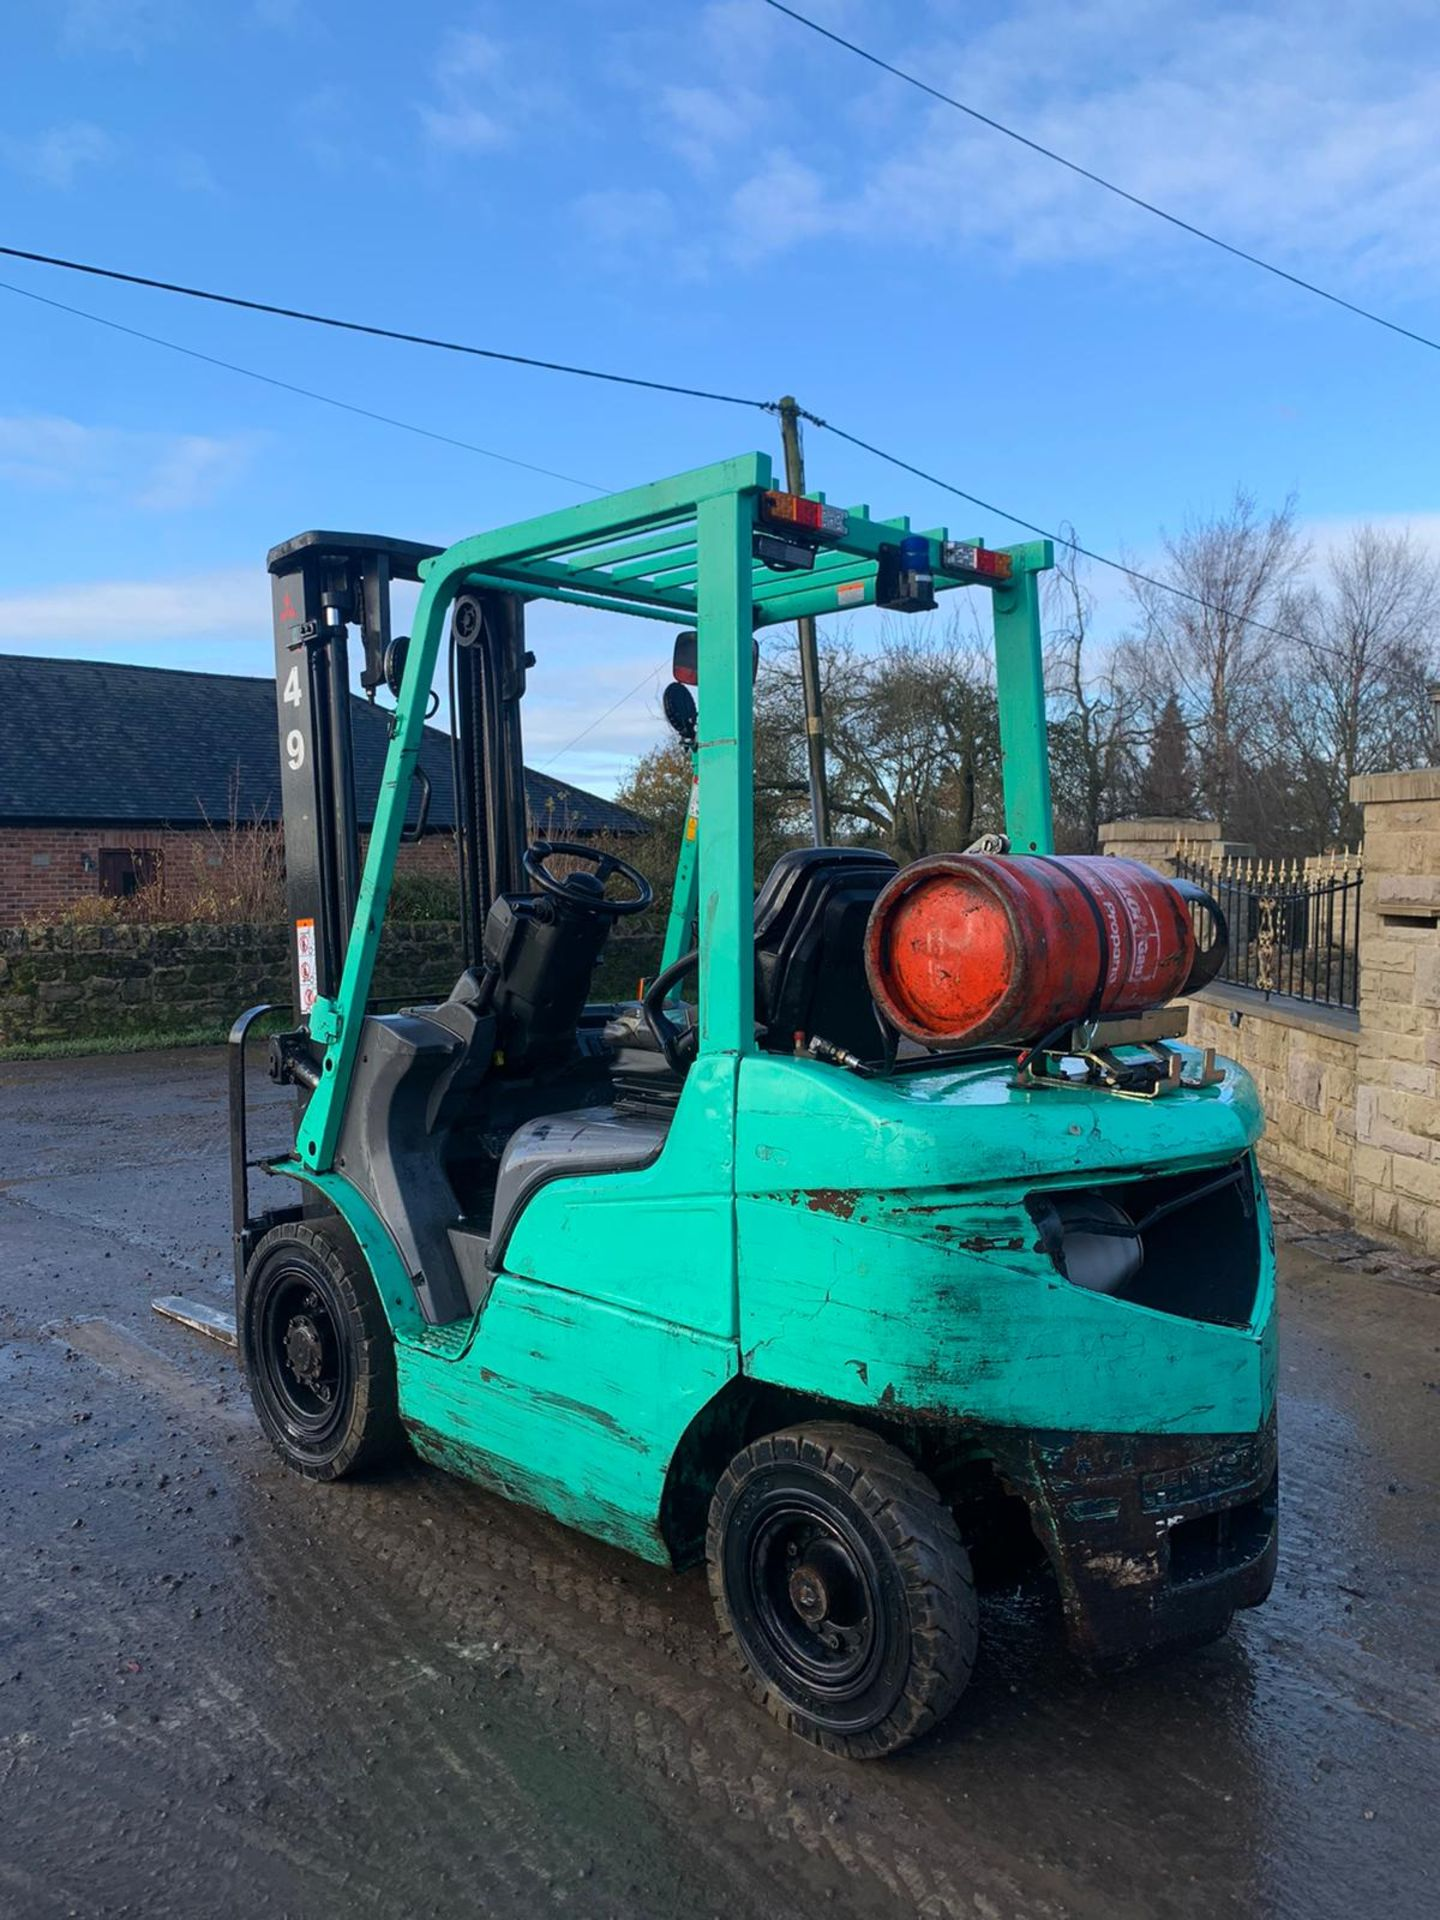 2015 MITSUBISHI FG25NT GAS FORKLIFT, RUNS, DRIVES, LIFTS, CLEAN MACHINE, SIDE SHIFT, CONTAINER SPEC - Image 2 of 6